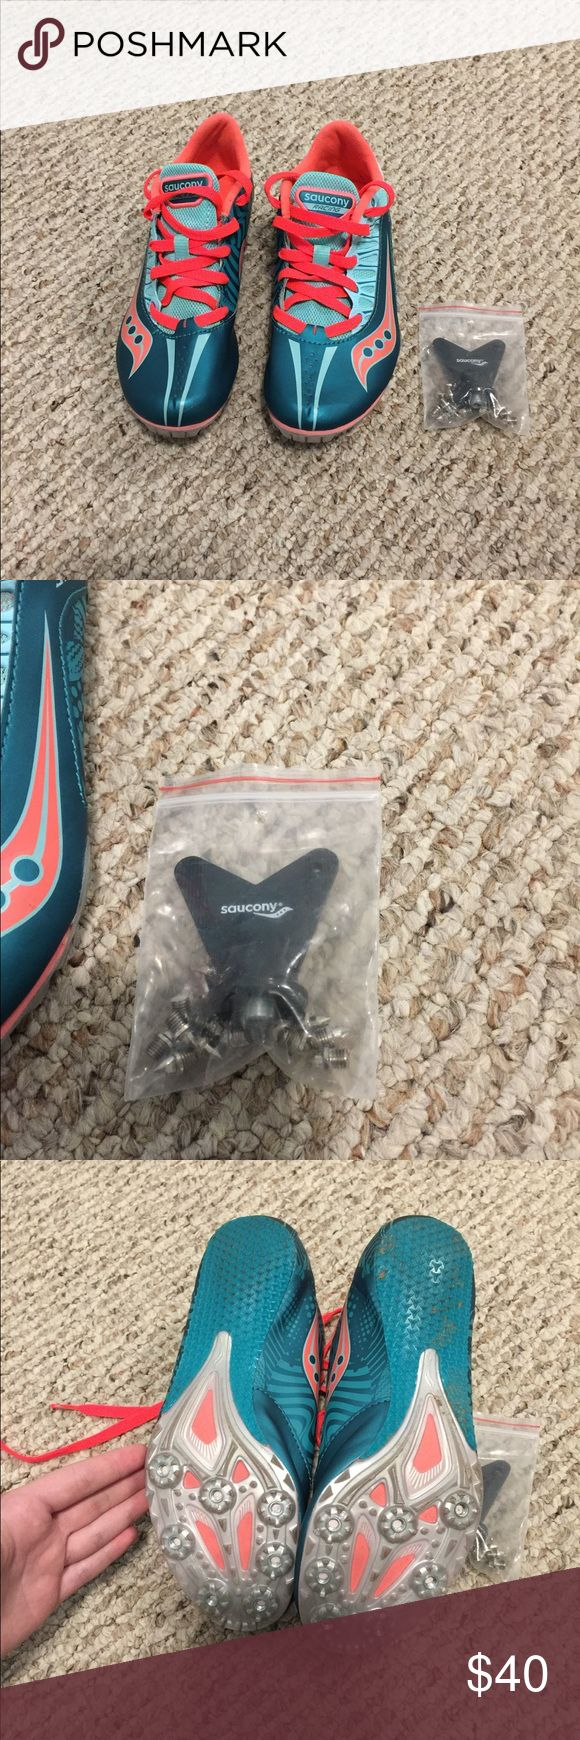 Women's 6.5 track spikes Women's size 6.5 track spikes. By saucony. In great condition, worn for about half of one track season but still in really good condition. Comes with spike inserts and the tool to insert them. Inside there are some little pieces of field turf and the logos have worn off some, please see photo. Smoke free home. I'm saving money for Christmas so check out my closet and don't be afraid to make offers :) Nike Shoes Athletic Shoes